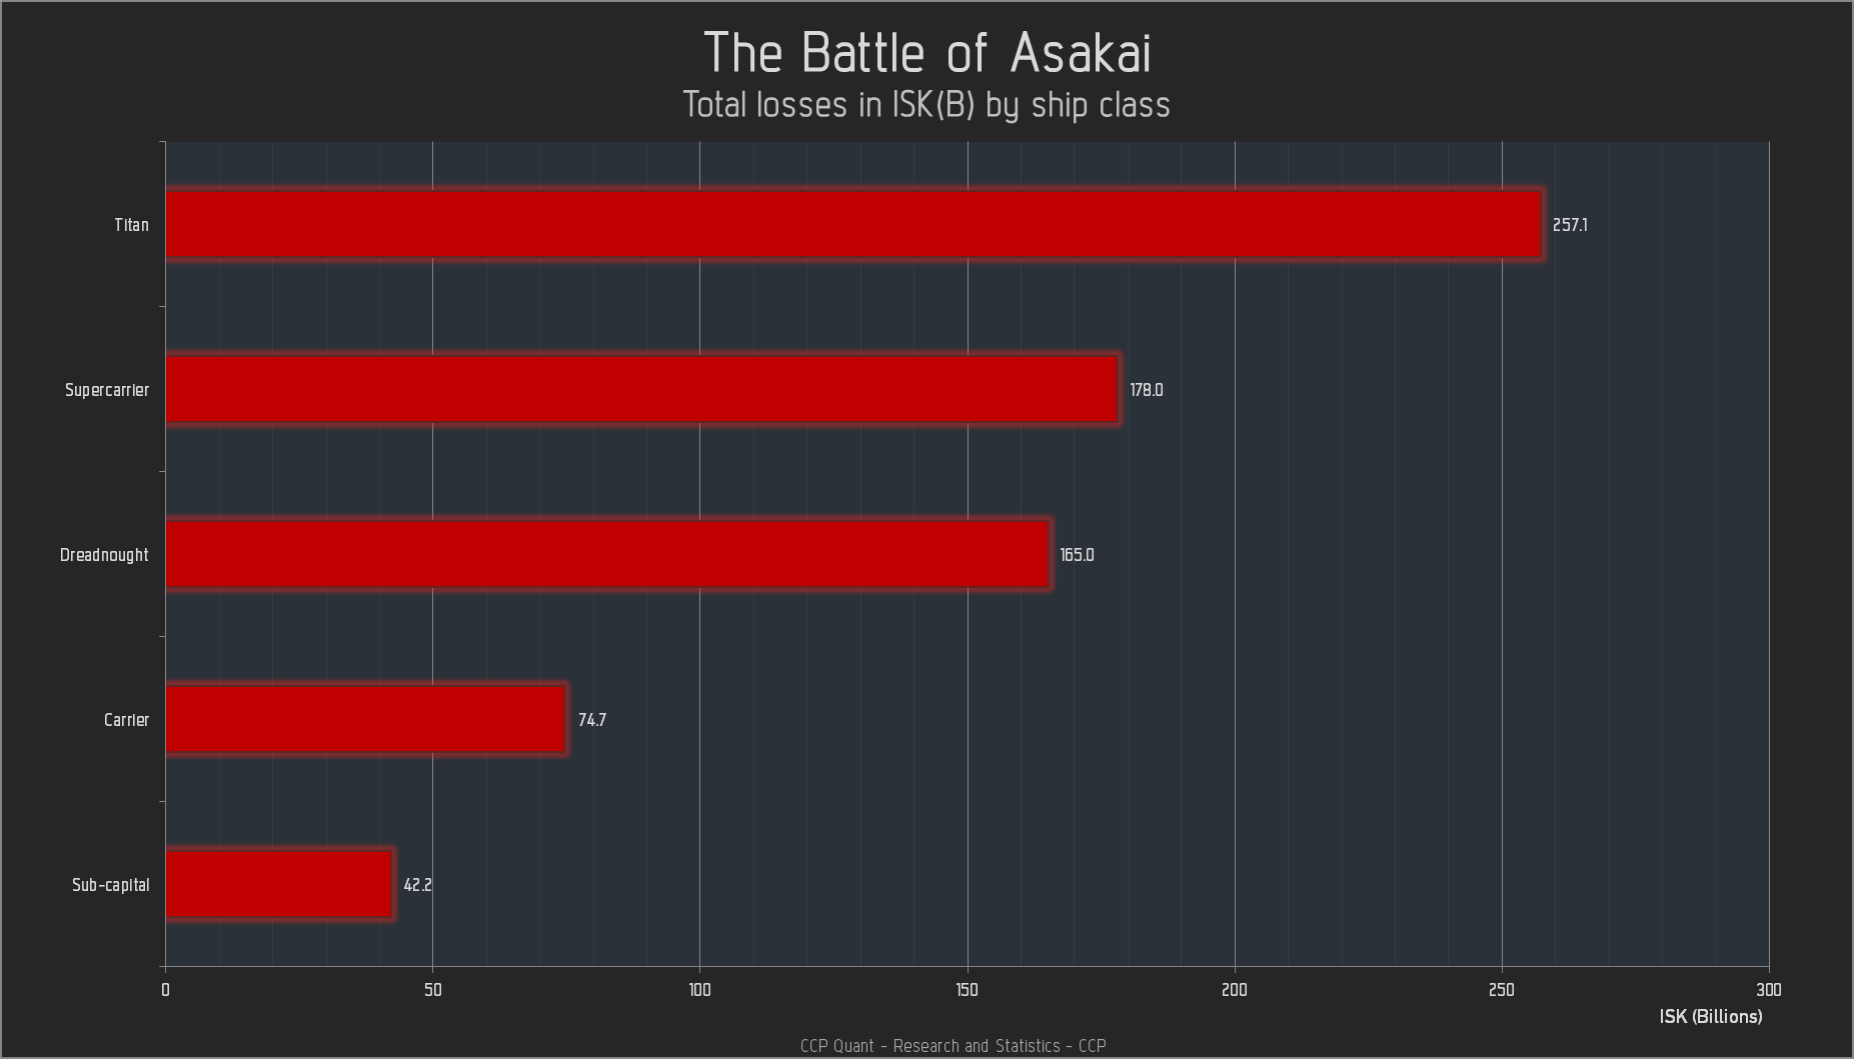 Total losses in ISK by ship class